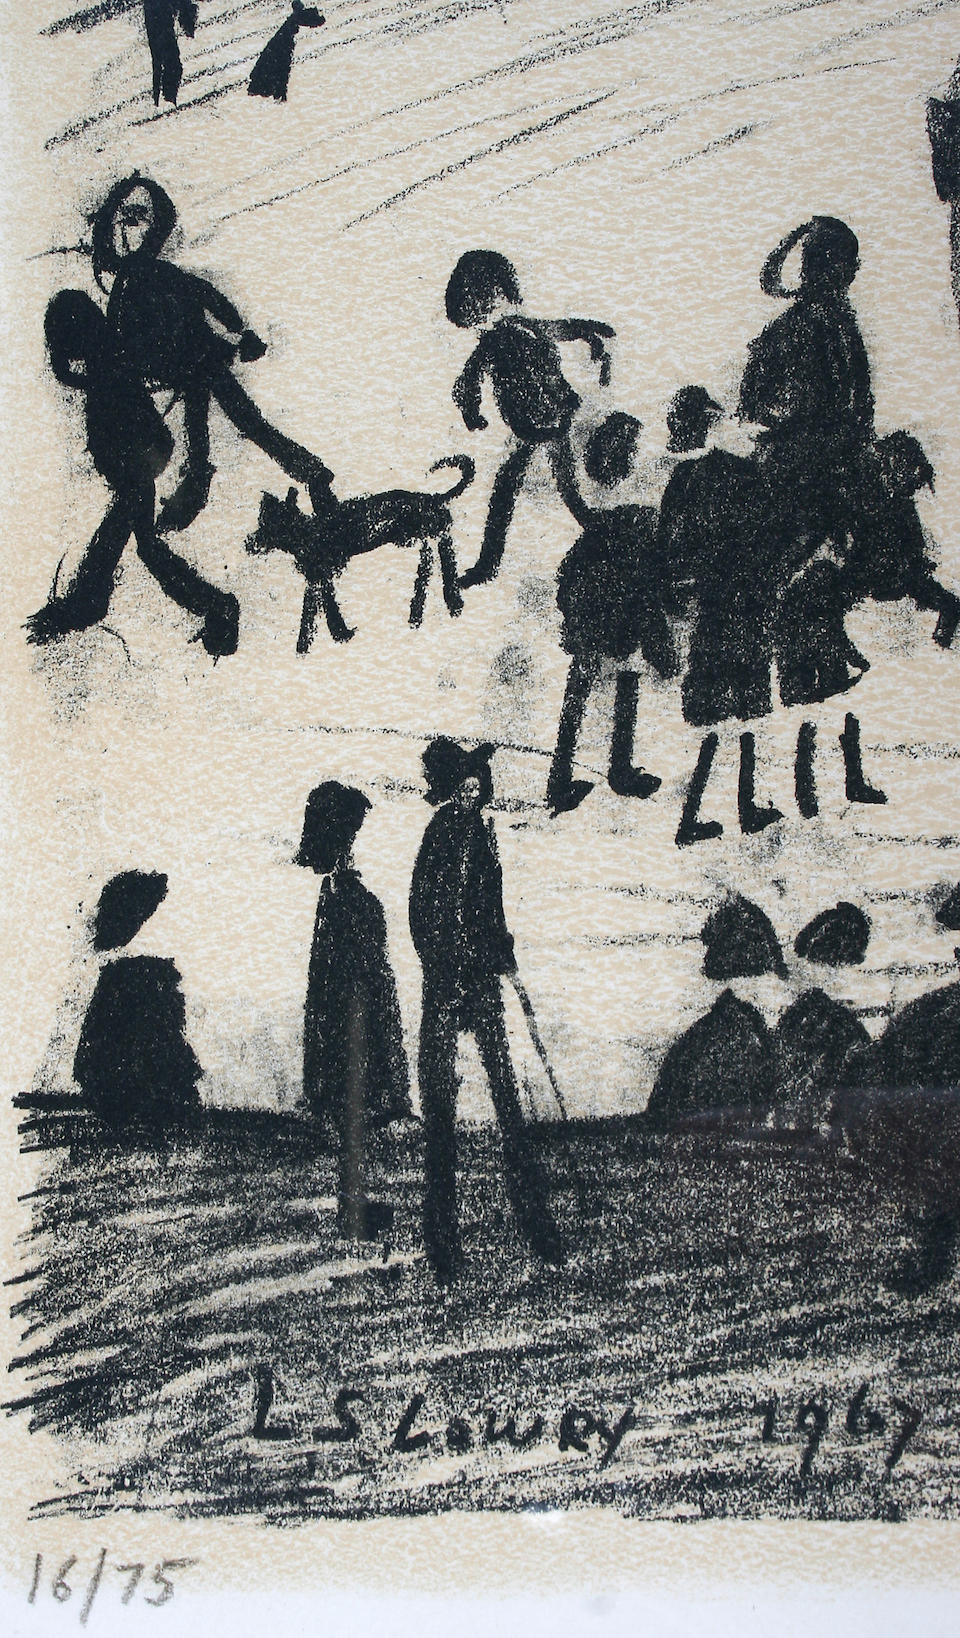 """Laurence Stephen Lowry, R.A. (British, 1887-1976) """"A Hillside"""", signed and numbered 16/75, lithograph, 49 x 61.5 cm,"""